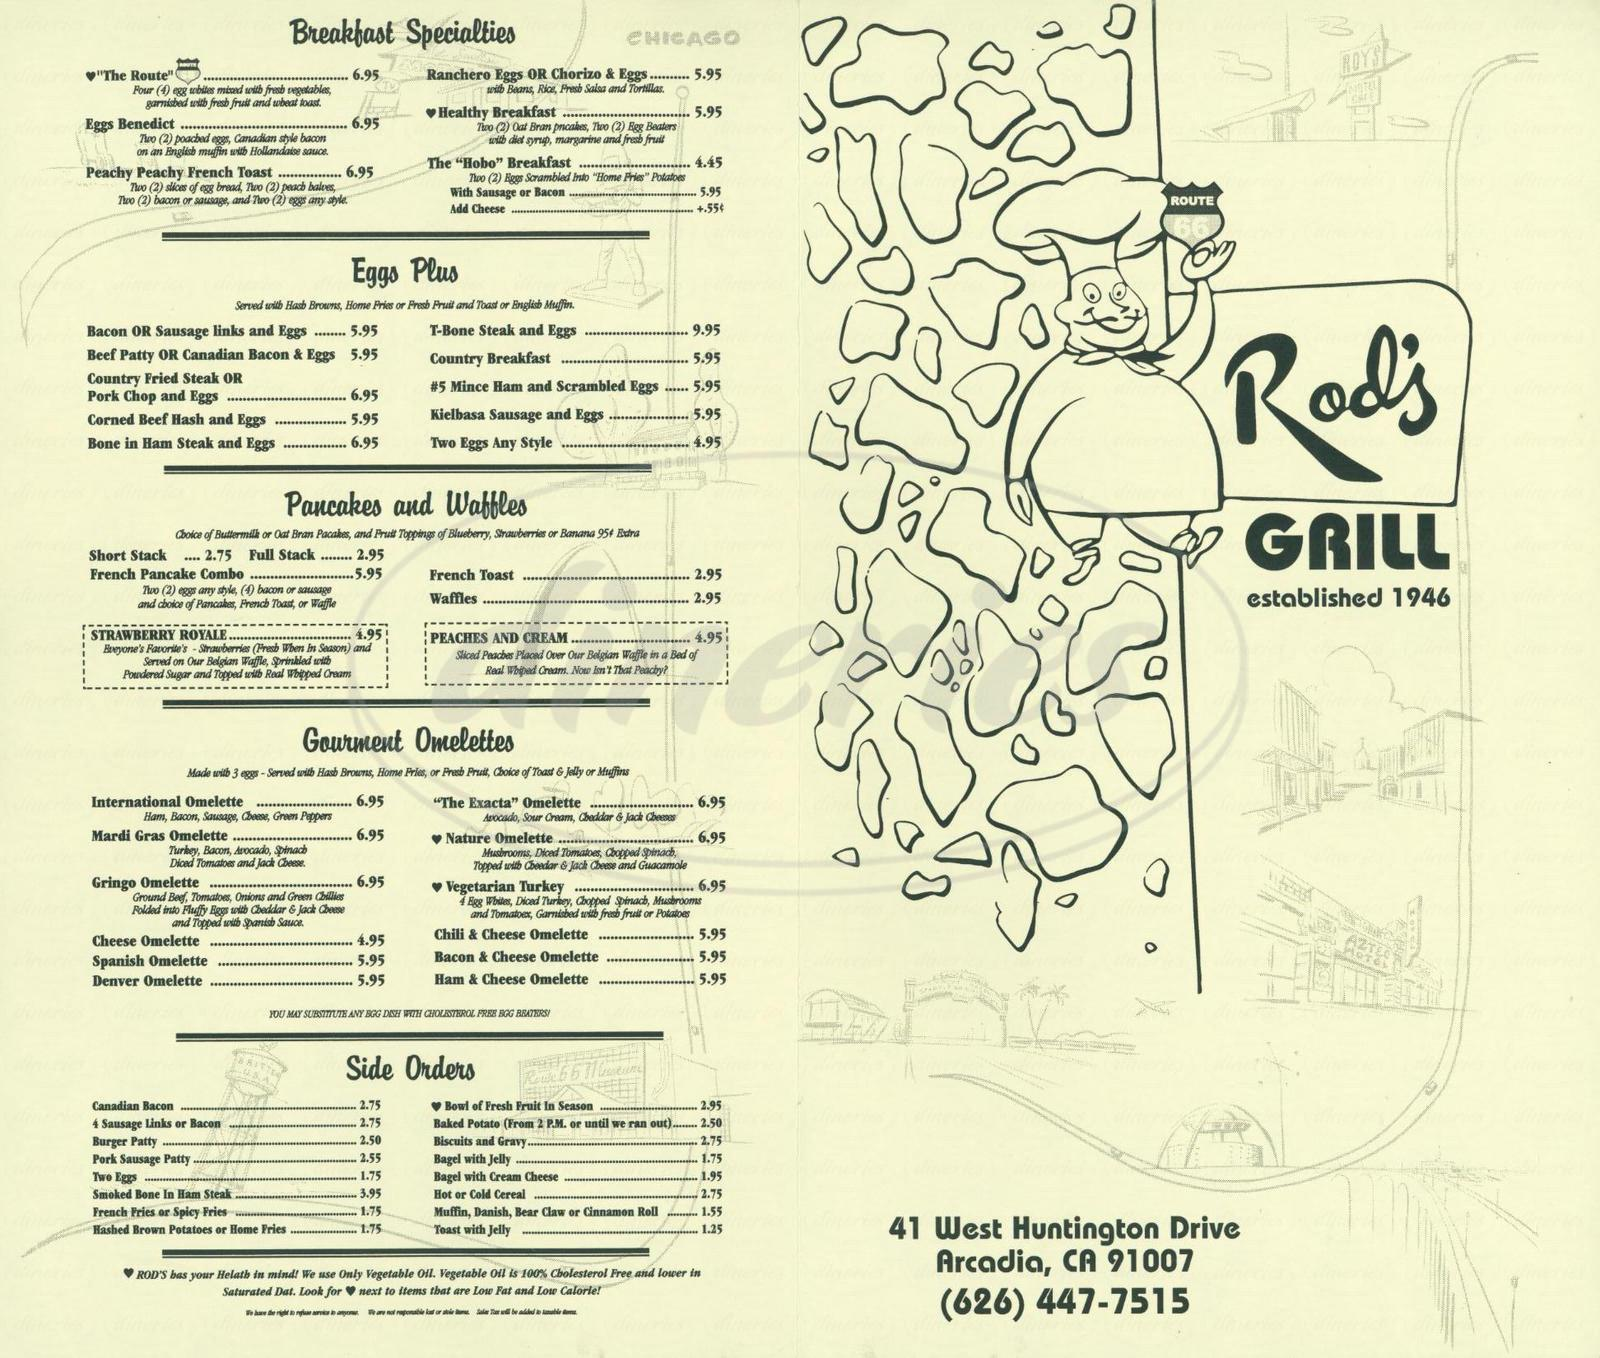 menu for Rod's Grill